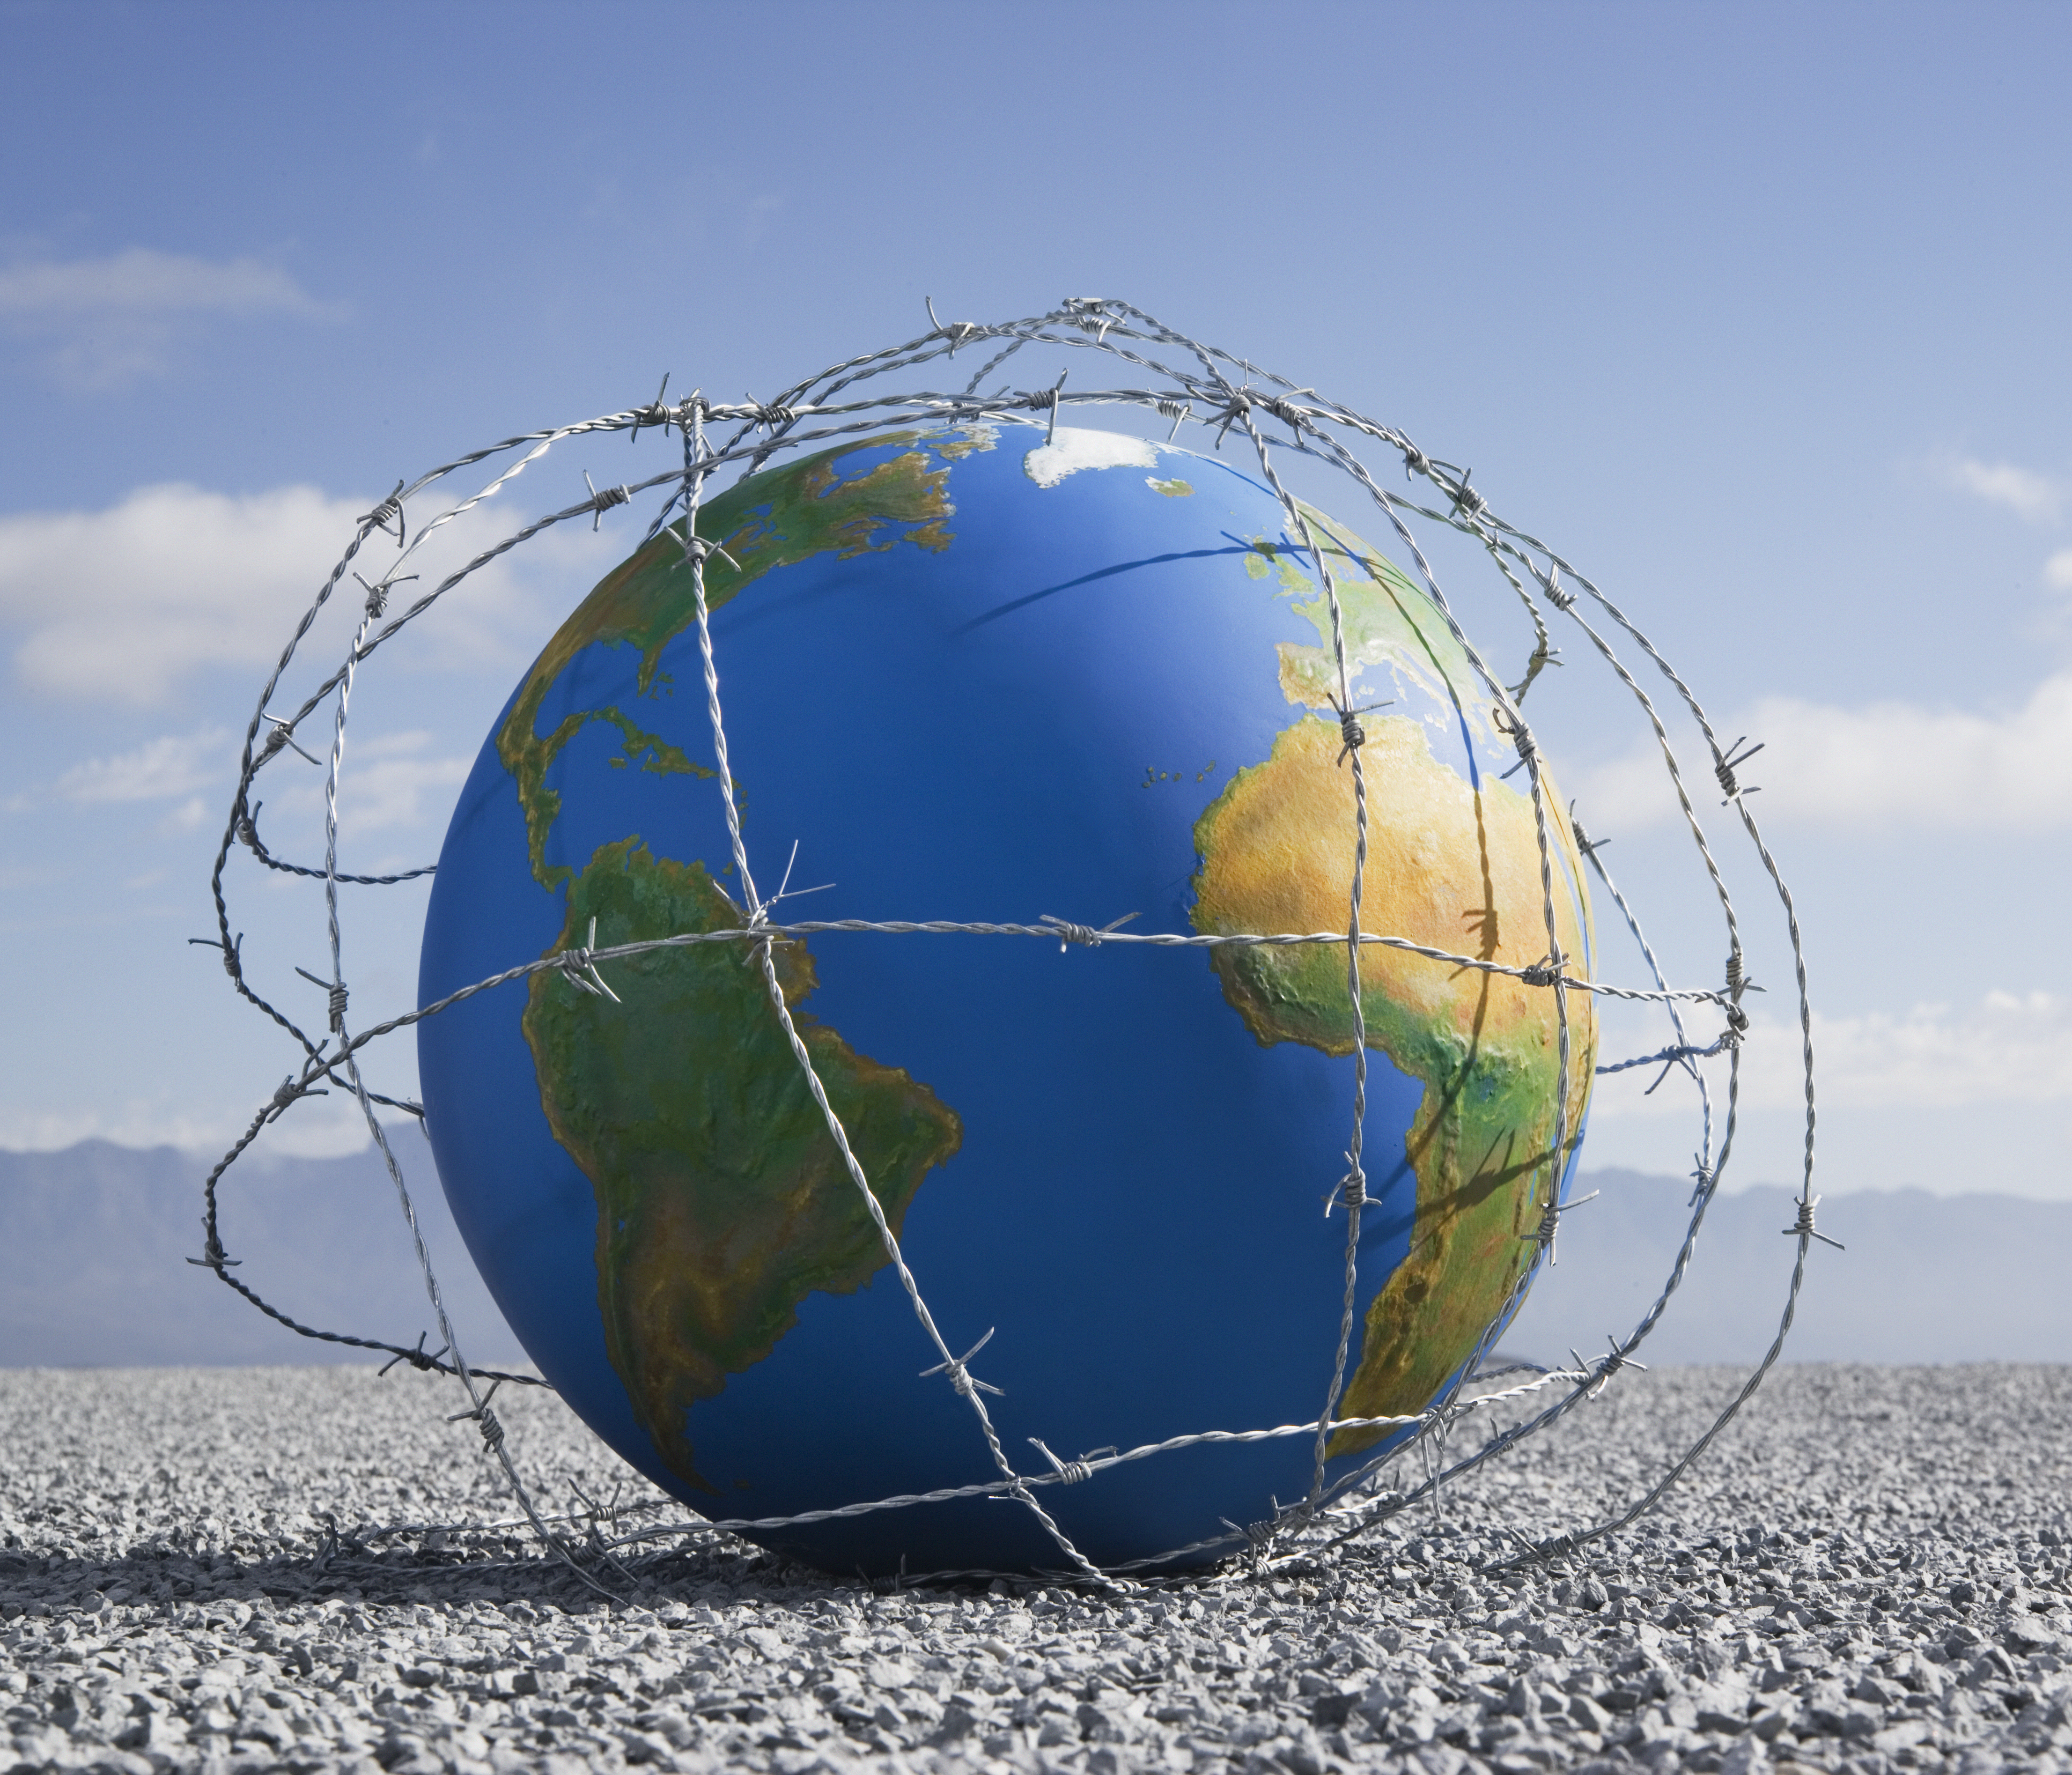 A globe entangled in barbed wire